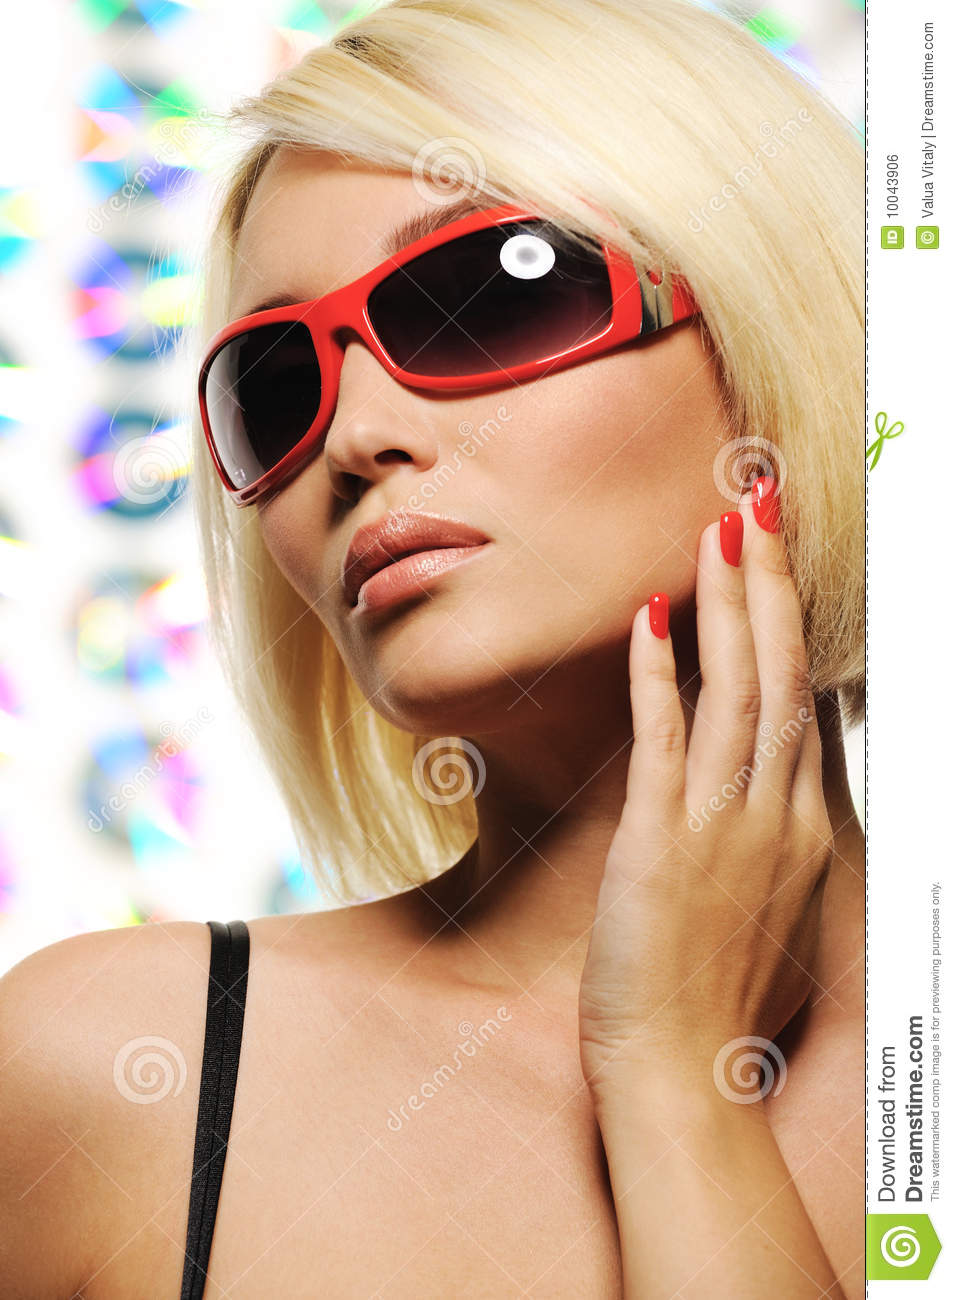 sunglasses fashion  Beauty Blond Woman In Red Fashion Sunglasses Royalty Free Stock ...